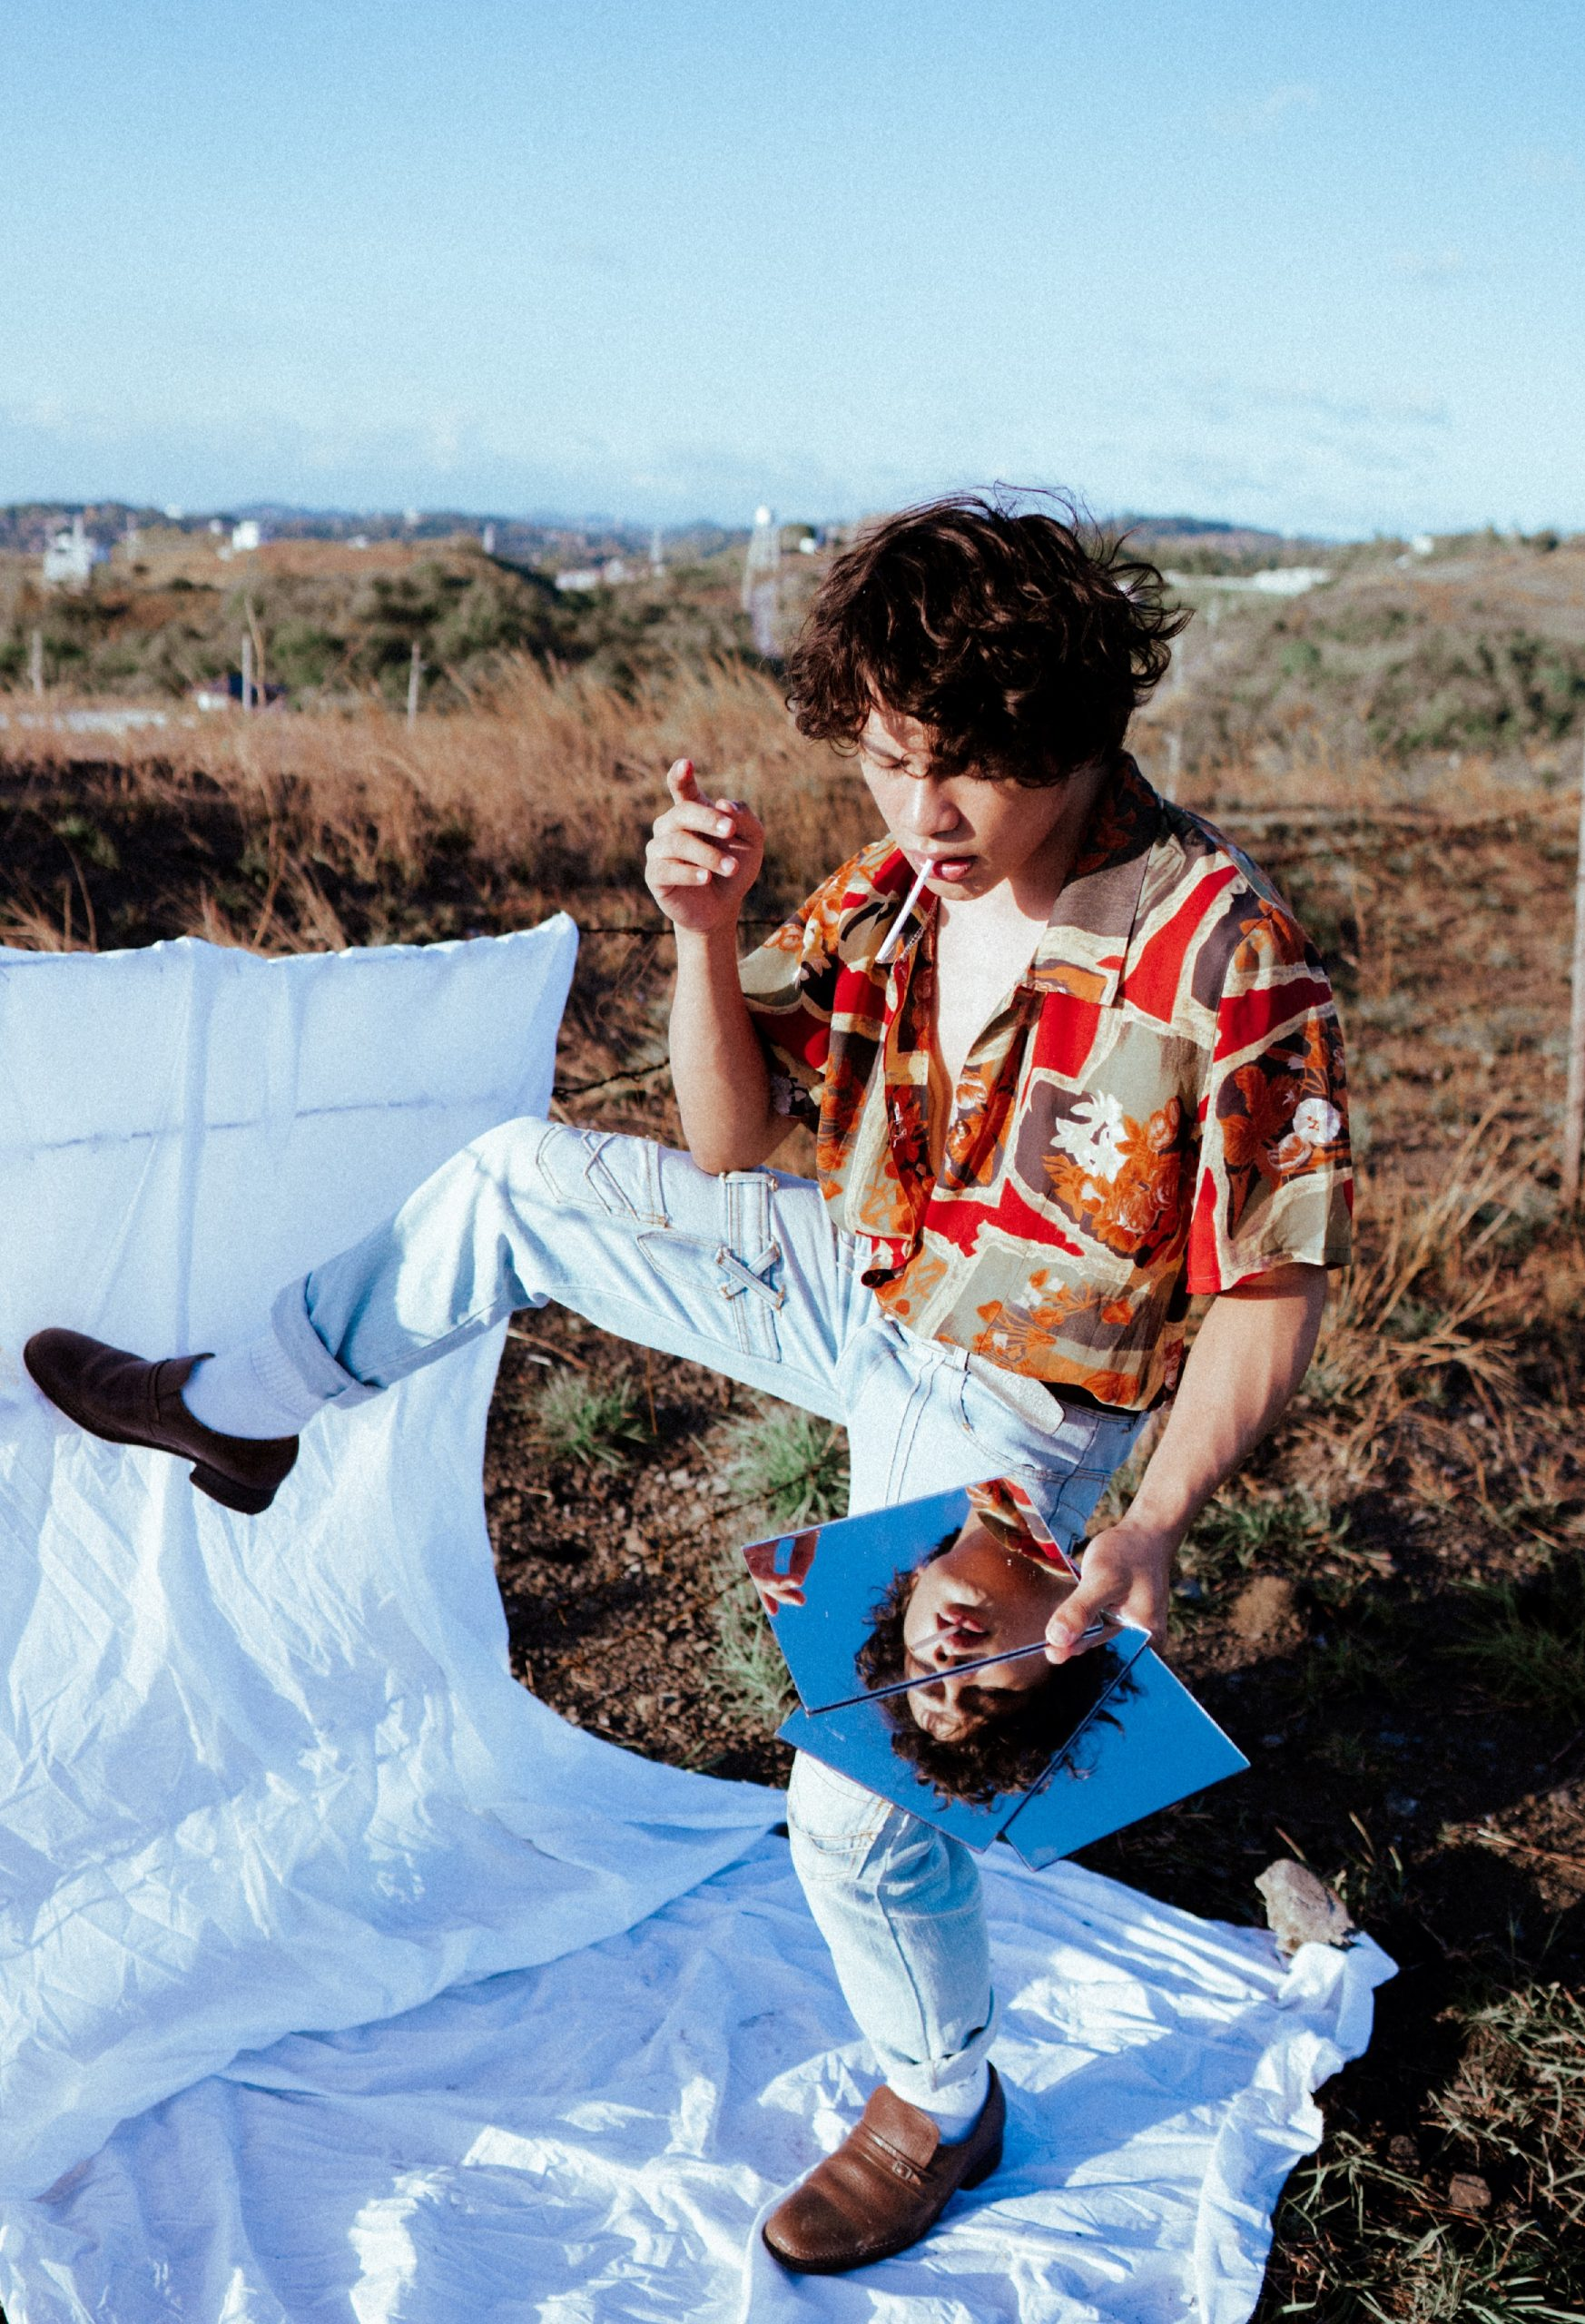 man with colorful box shirt and jeans posing on a white sheet on an open field, casual fashion, casual outfits, casual clothes, casual wear